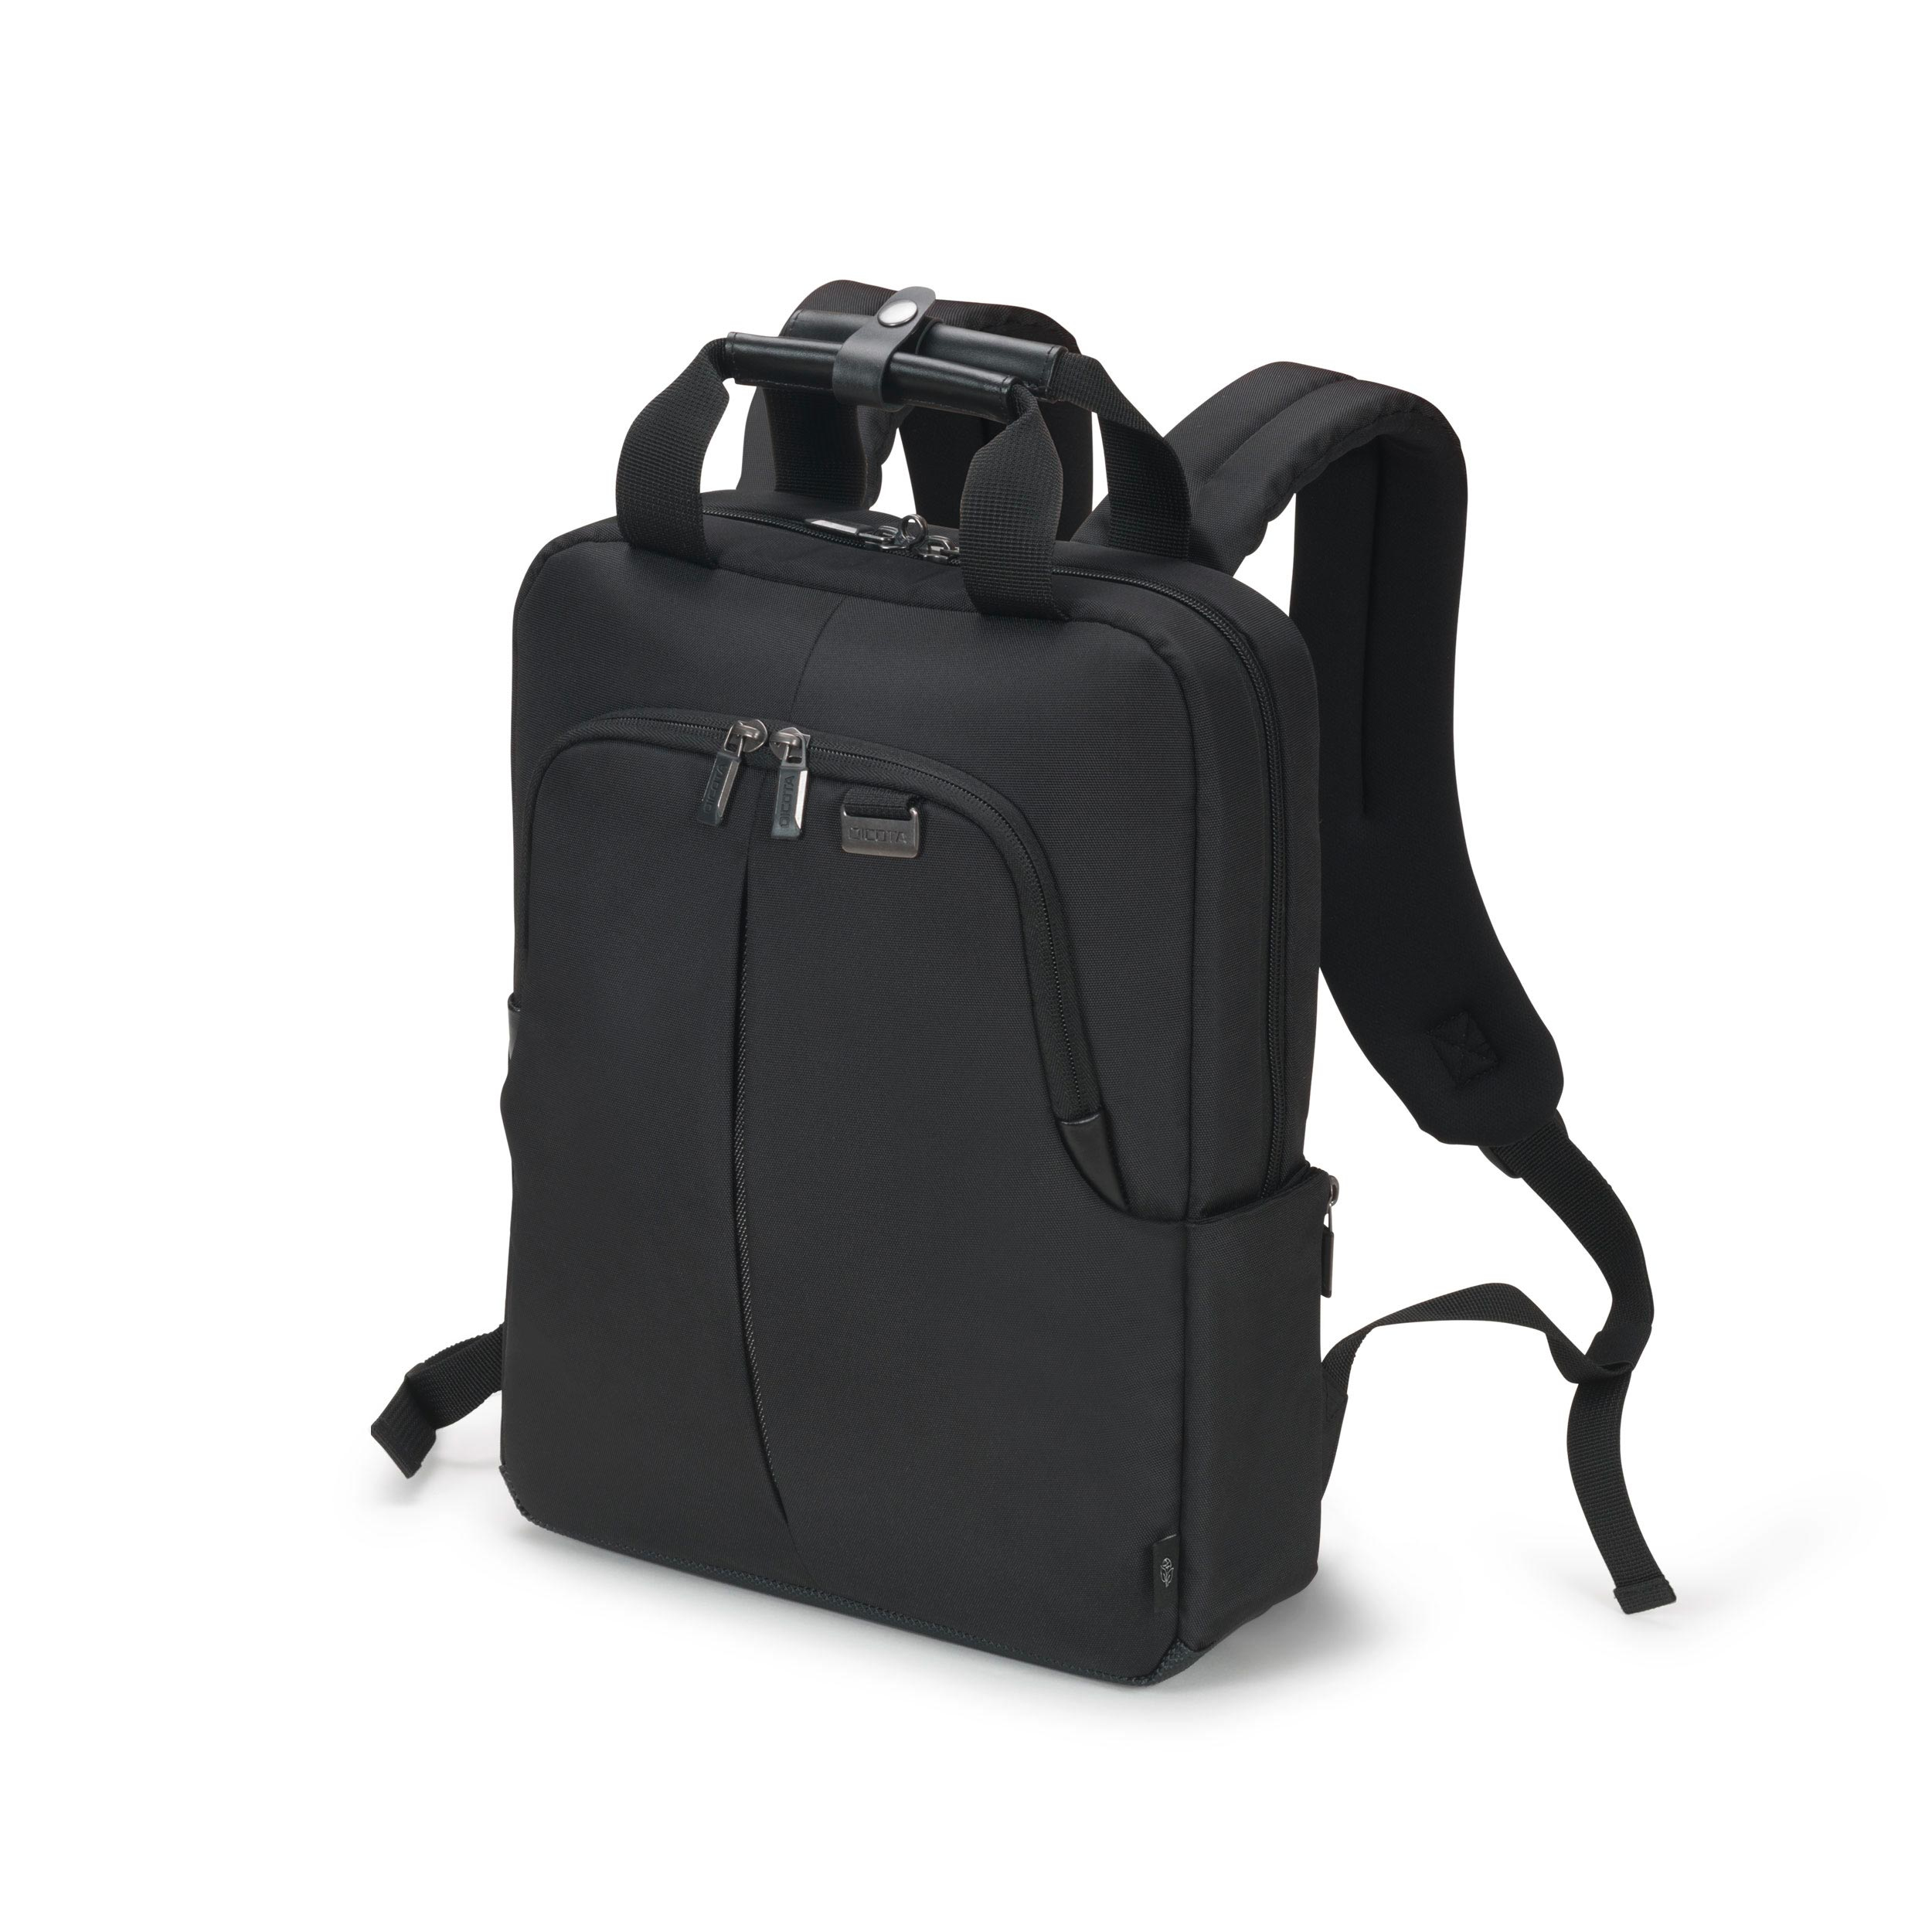 Dicota - Consignment             Eco Backpack Slim Pro 12-14.1       Black                               D31820